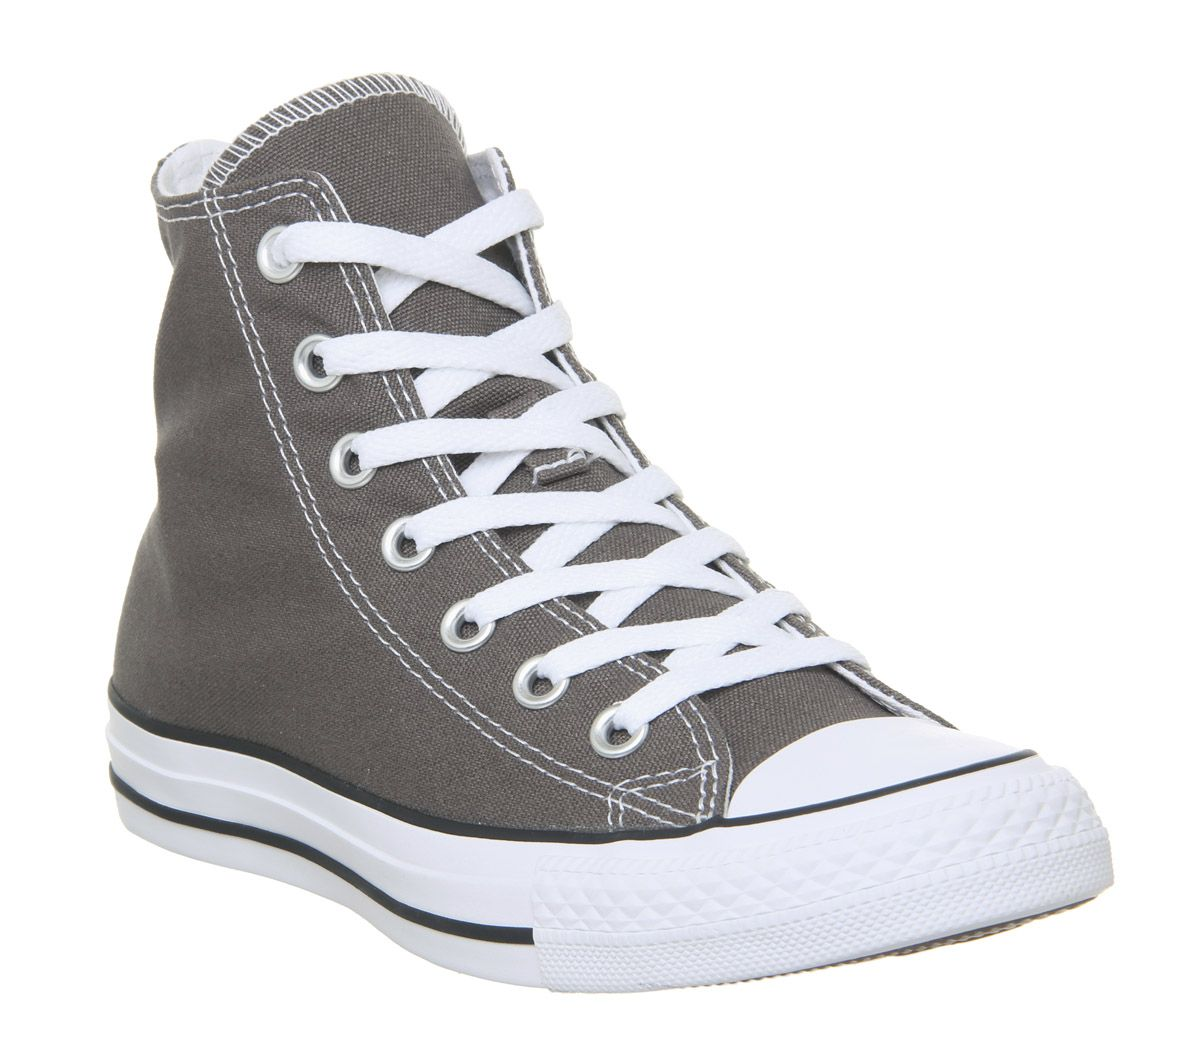 6bbb193c140e Converse All Star Hi Charcoal - Unisex Sports